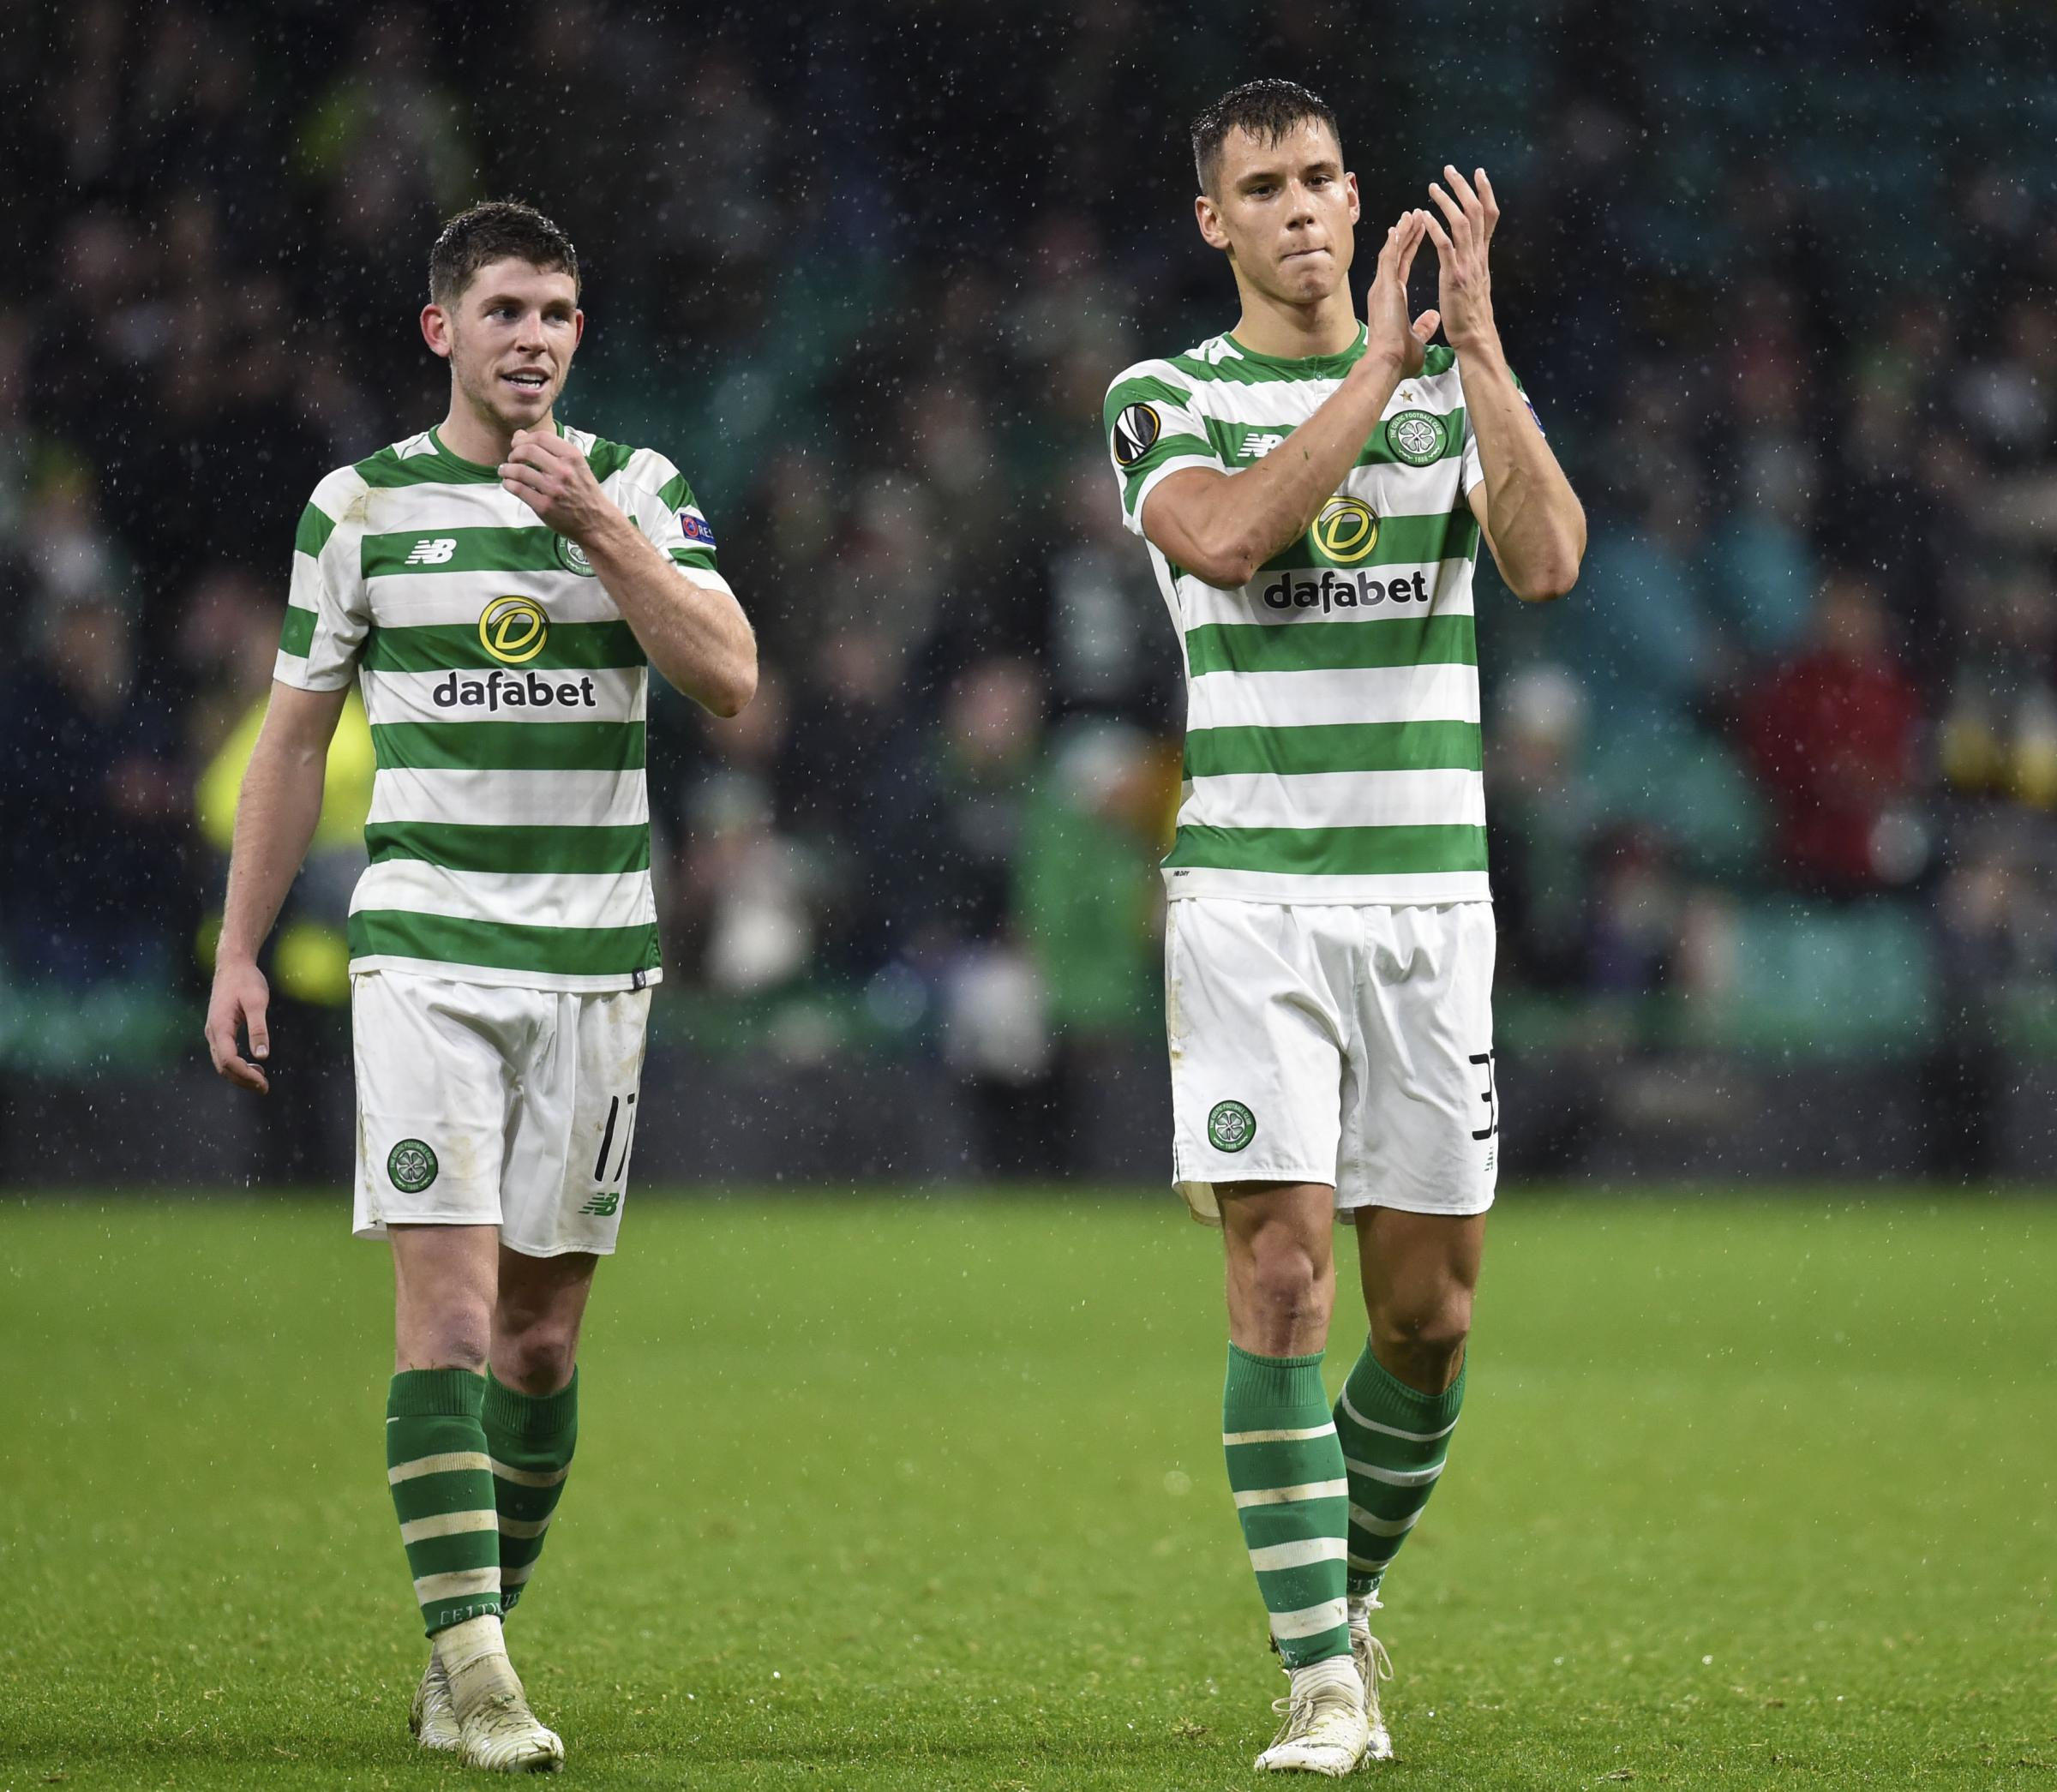 08/11/18 UEFA EUROPA LEAGUE GROUP B.CELTIC v RB LEIPZIG (2-1).CELTIC PARK - GLASGOW.Celtic's Filip Benkovic (R) and Ryan Christie celebrate at full time..